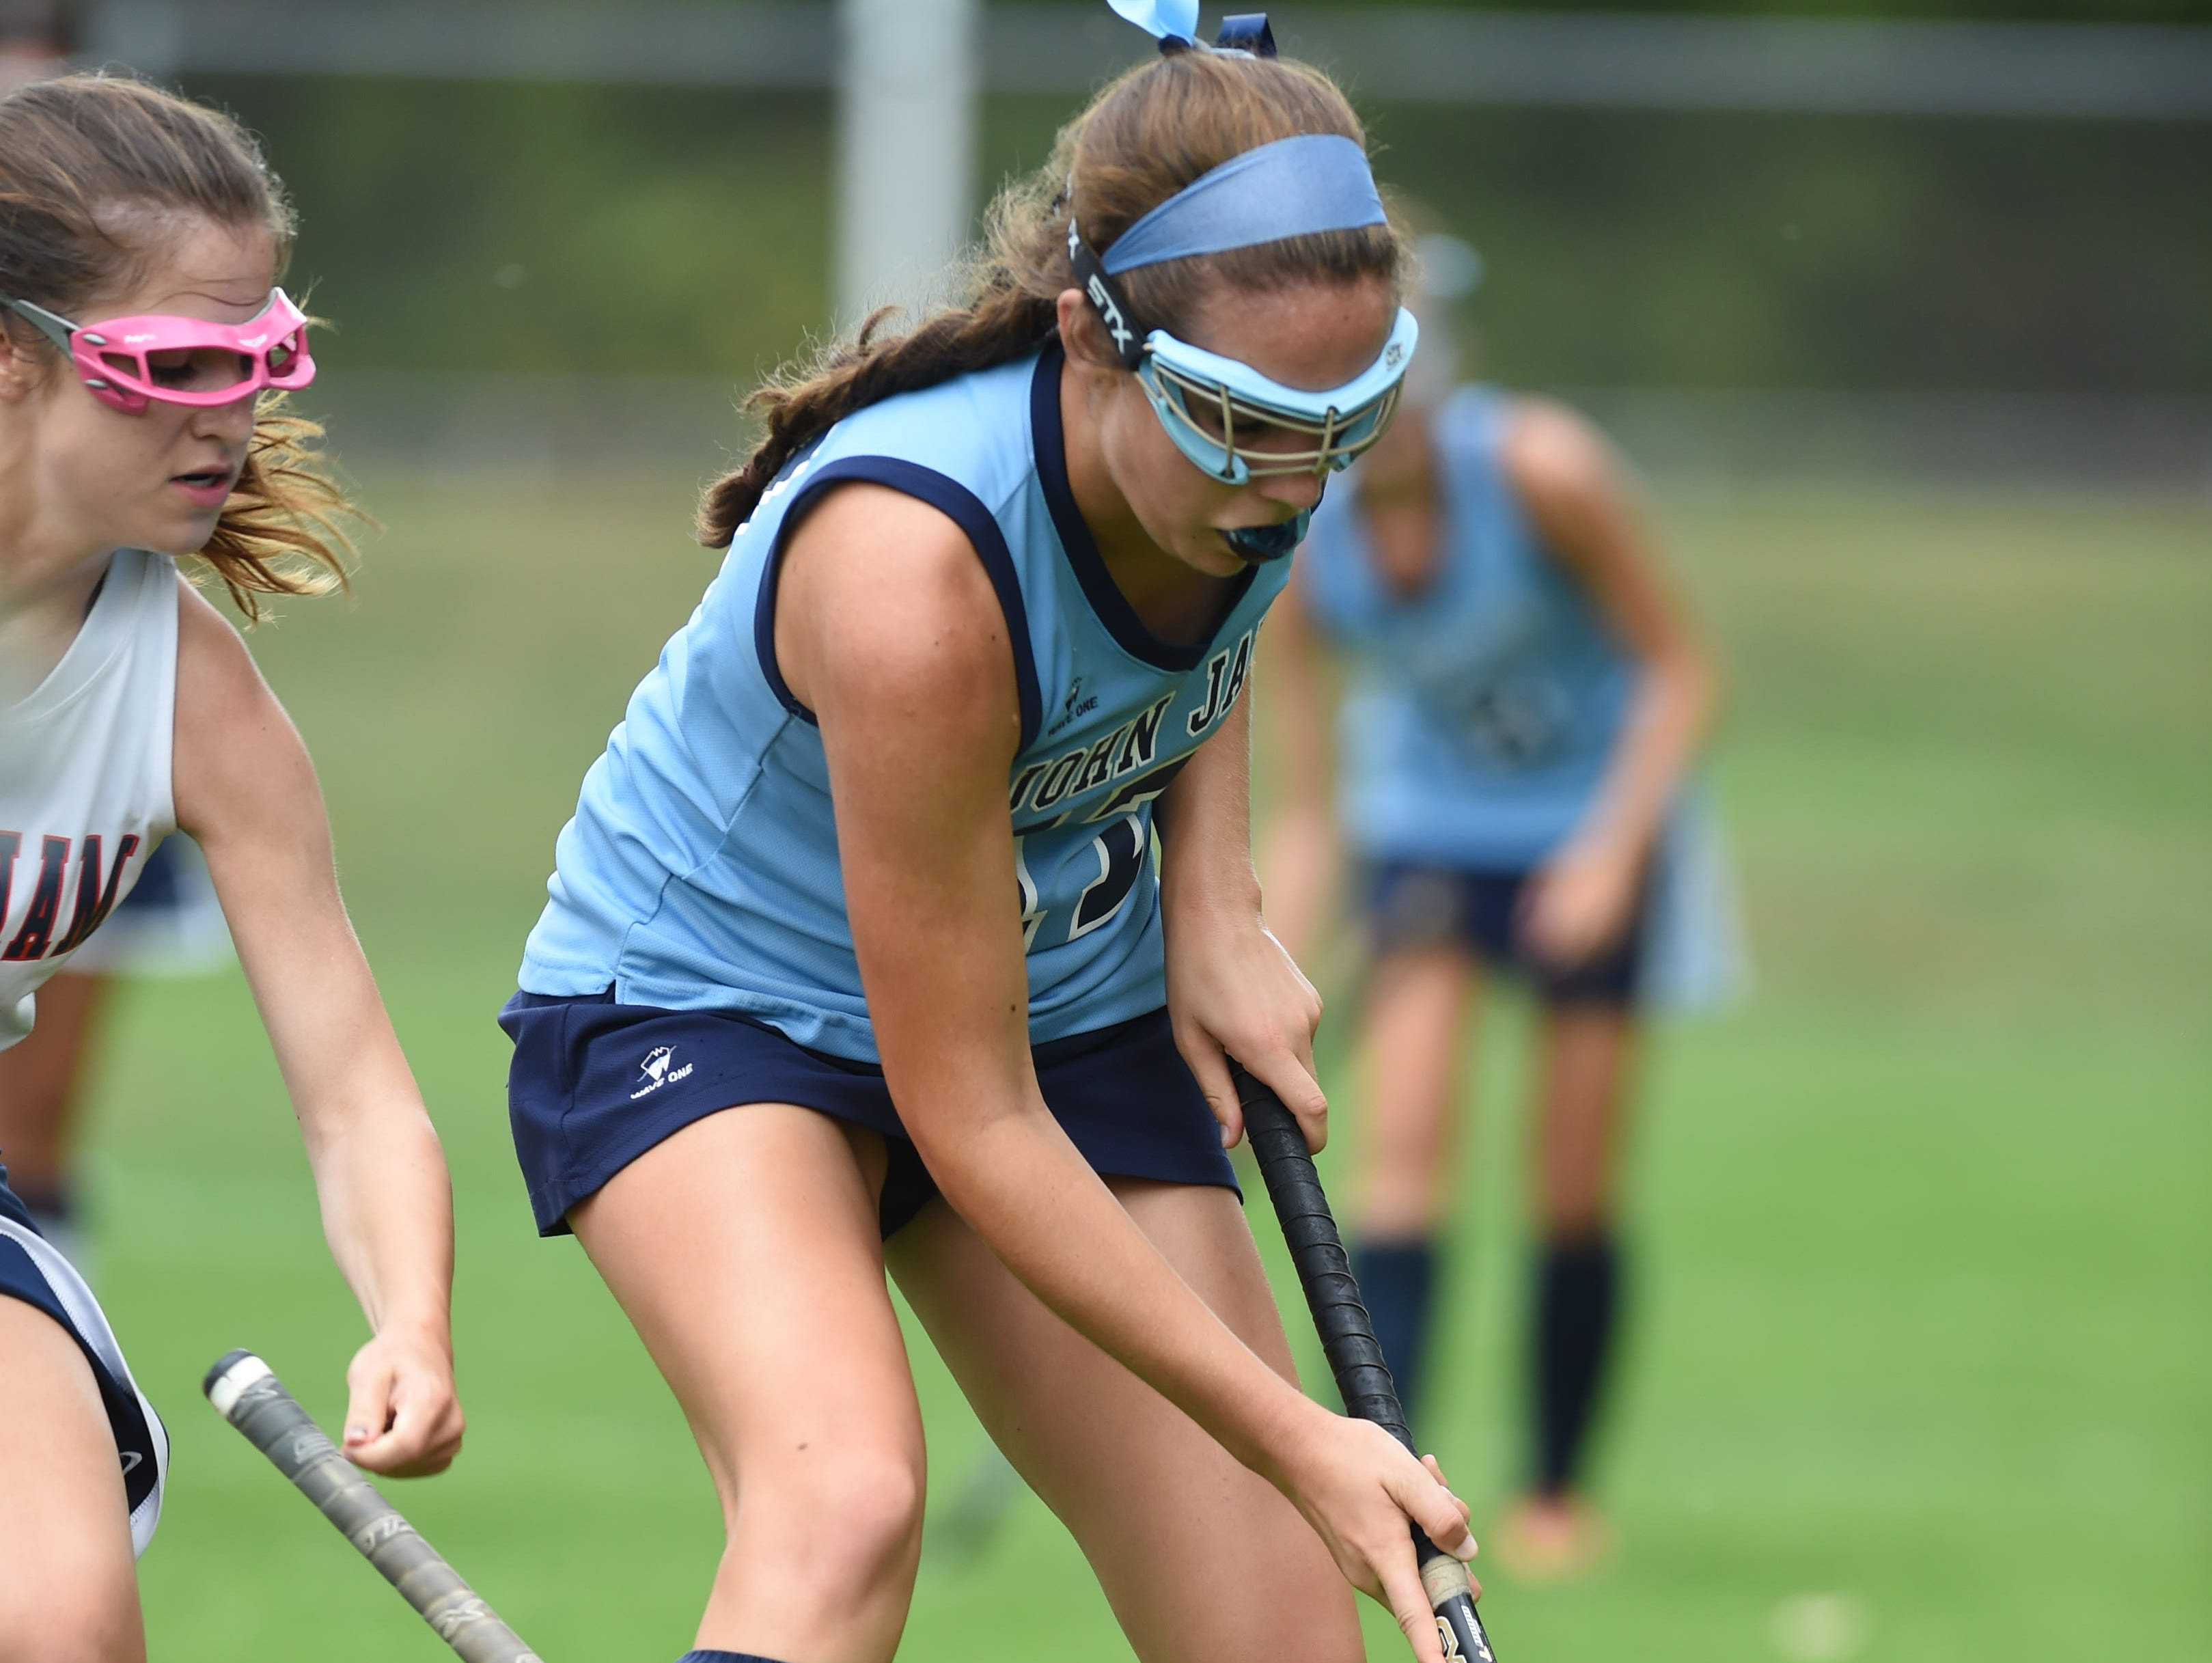 John Jay High School's Jenna Croce moves the ball during a field hockey game against Roy C. Ketcham on Sept. 29.